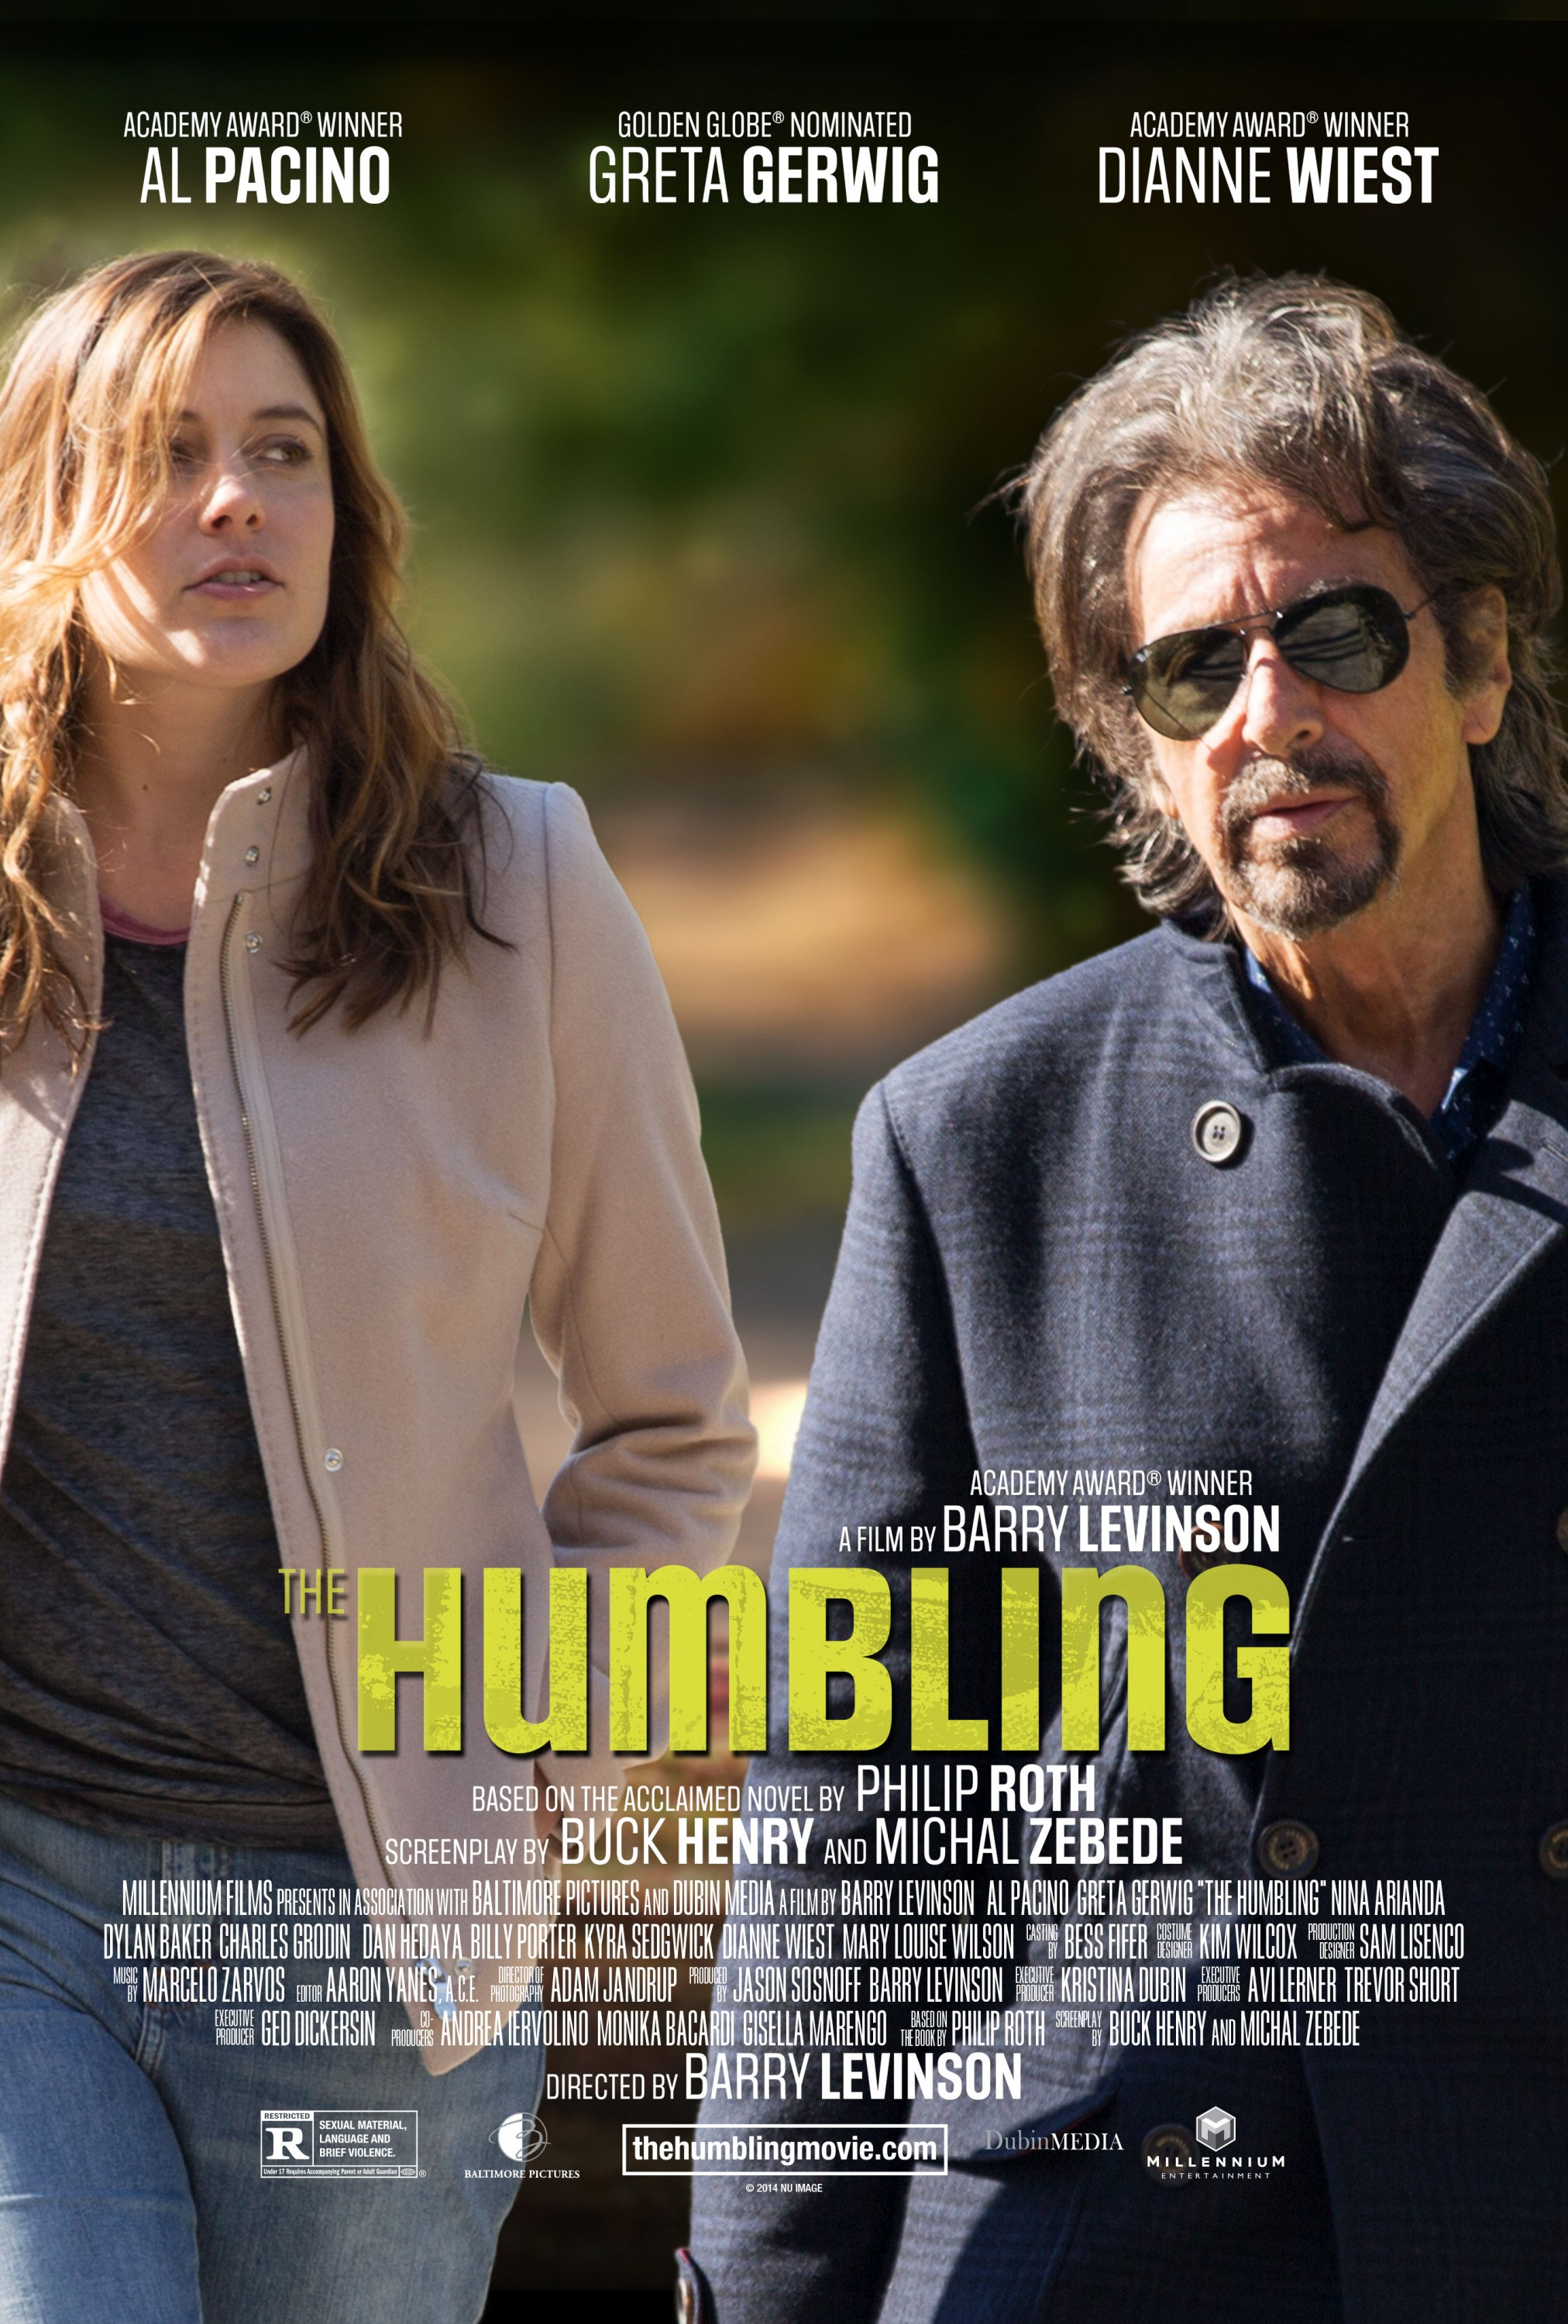 The Humbling-Official POSTER XXLG-27OUTUBRO2014